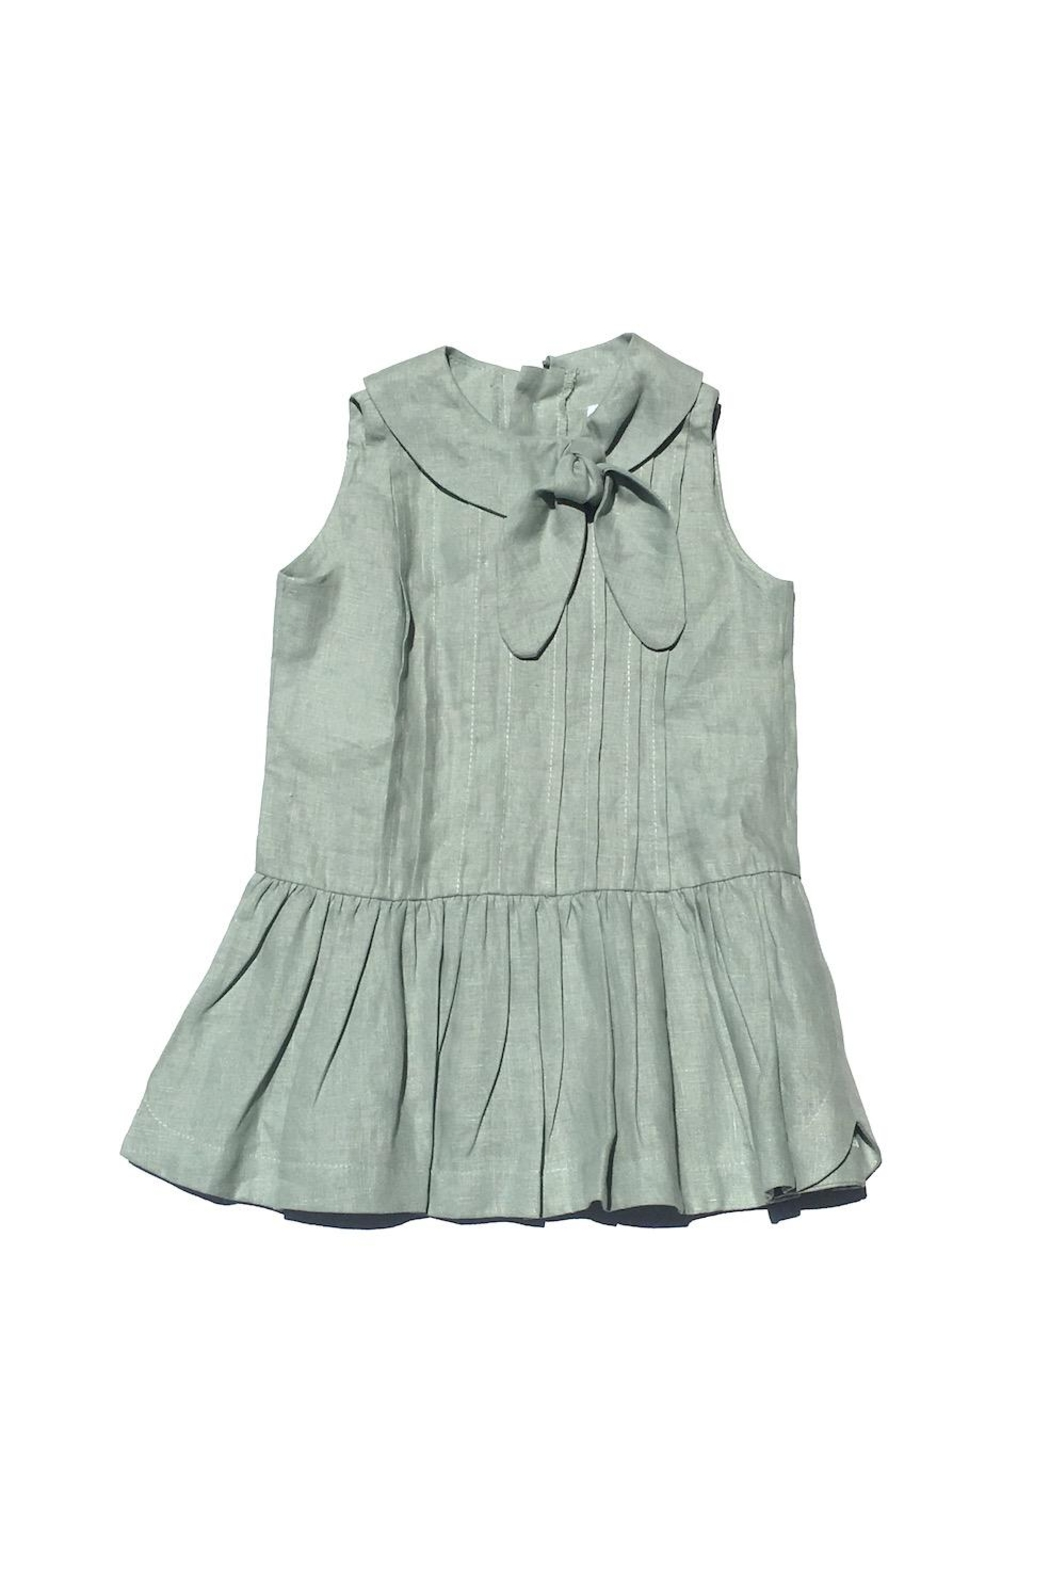 Little Goodall Eleanor Linen Dress - Main Image